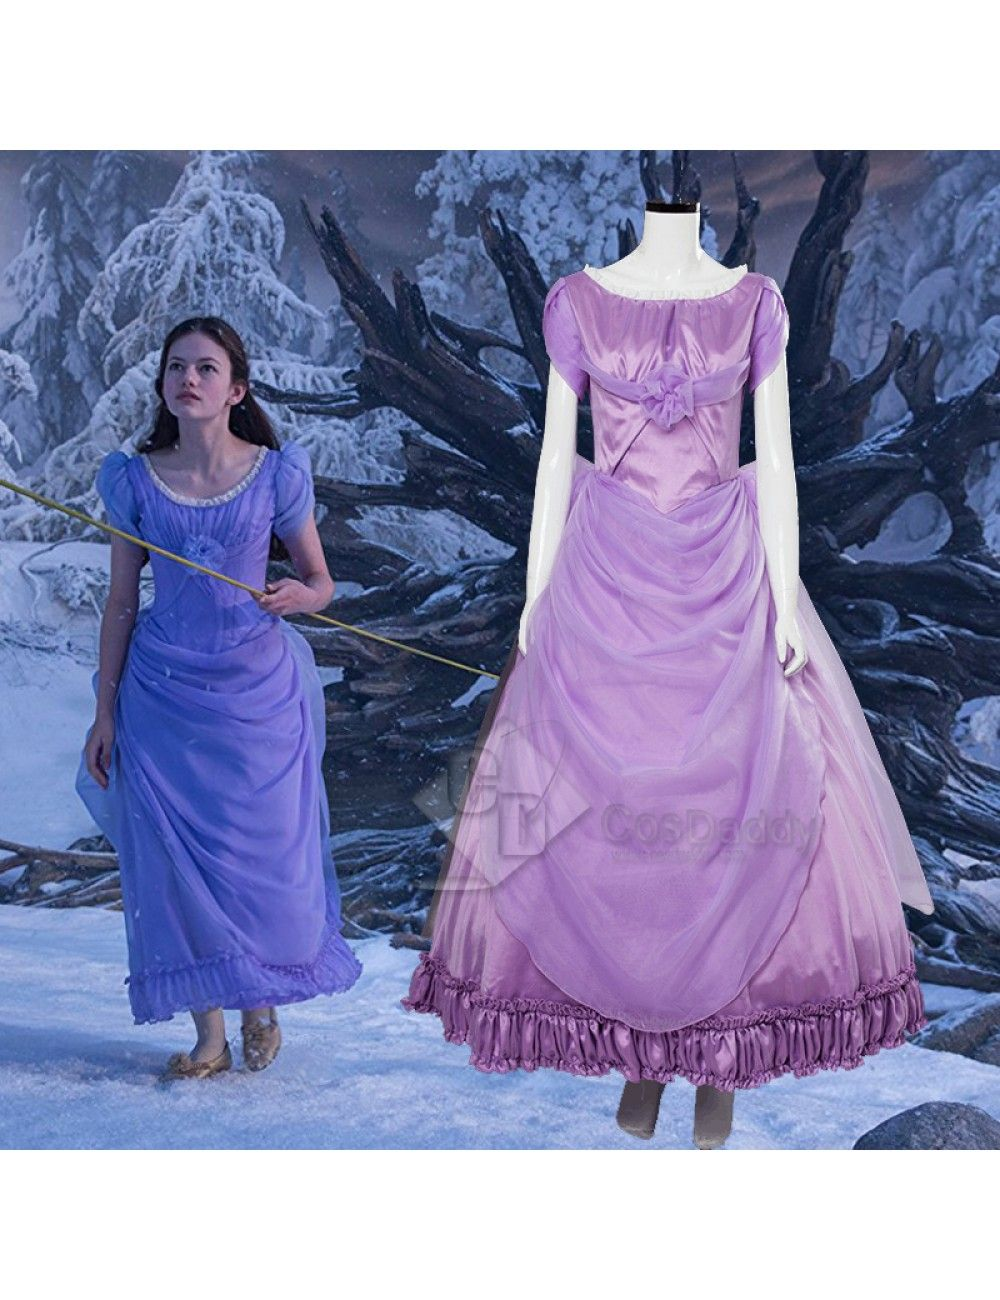 The Nutcracker And The Four Realms Clara Cosplay Costume  c5899a3d4bf3